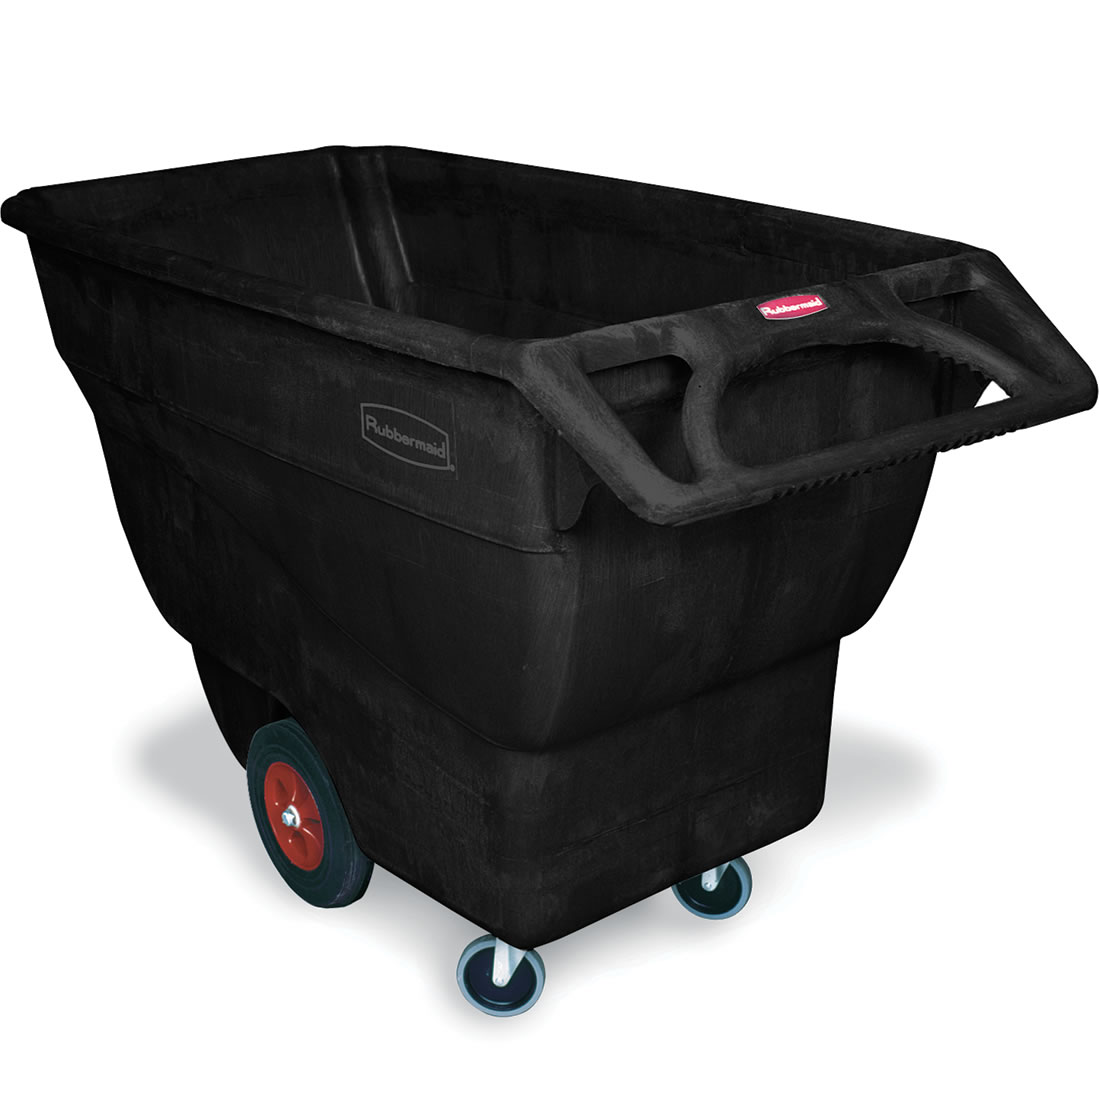 161772908817 furthermore Rubbermaid 5640 Low Wheel Cart 7 5 Cu Ft Black additionally Big Wheel Cart together with 16607437 also 122011973273. on rubbermaid tilt carts